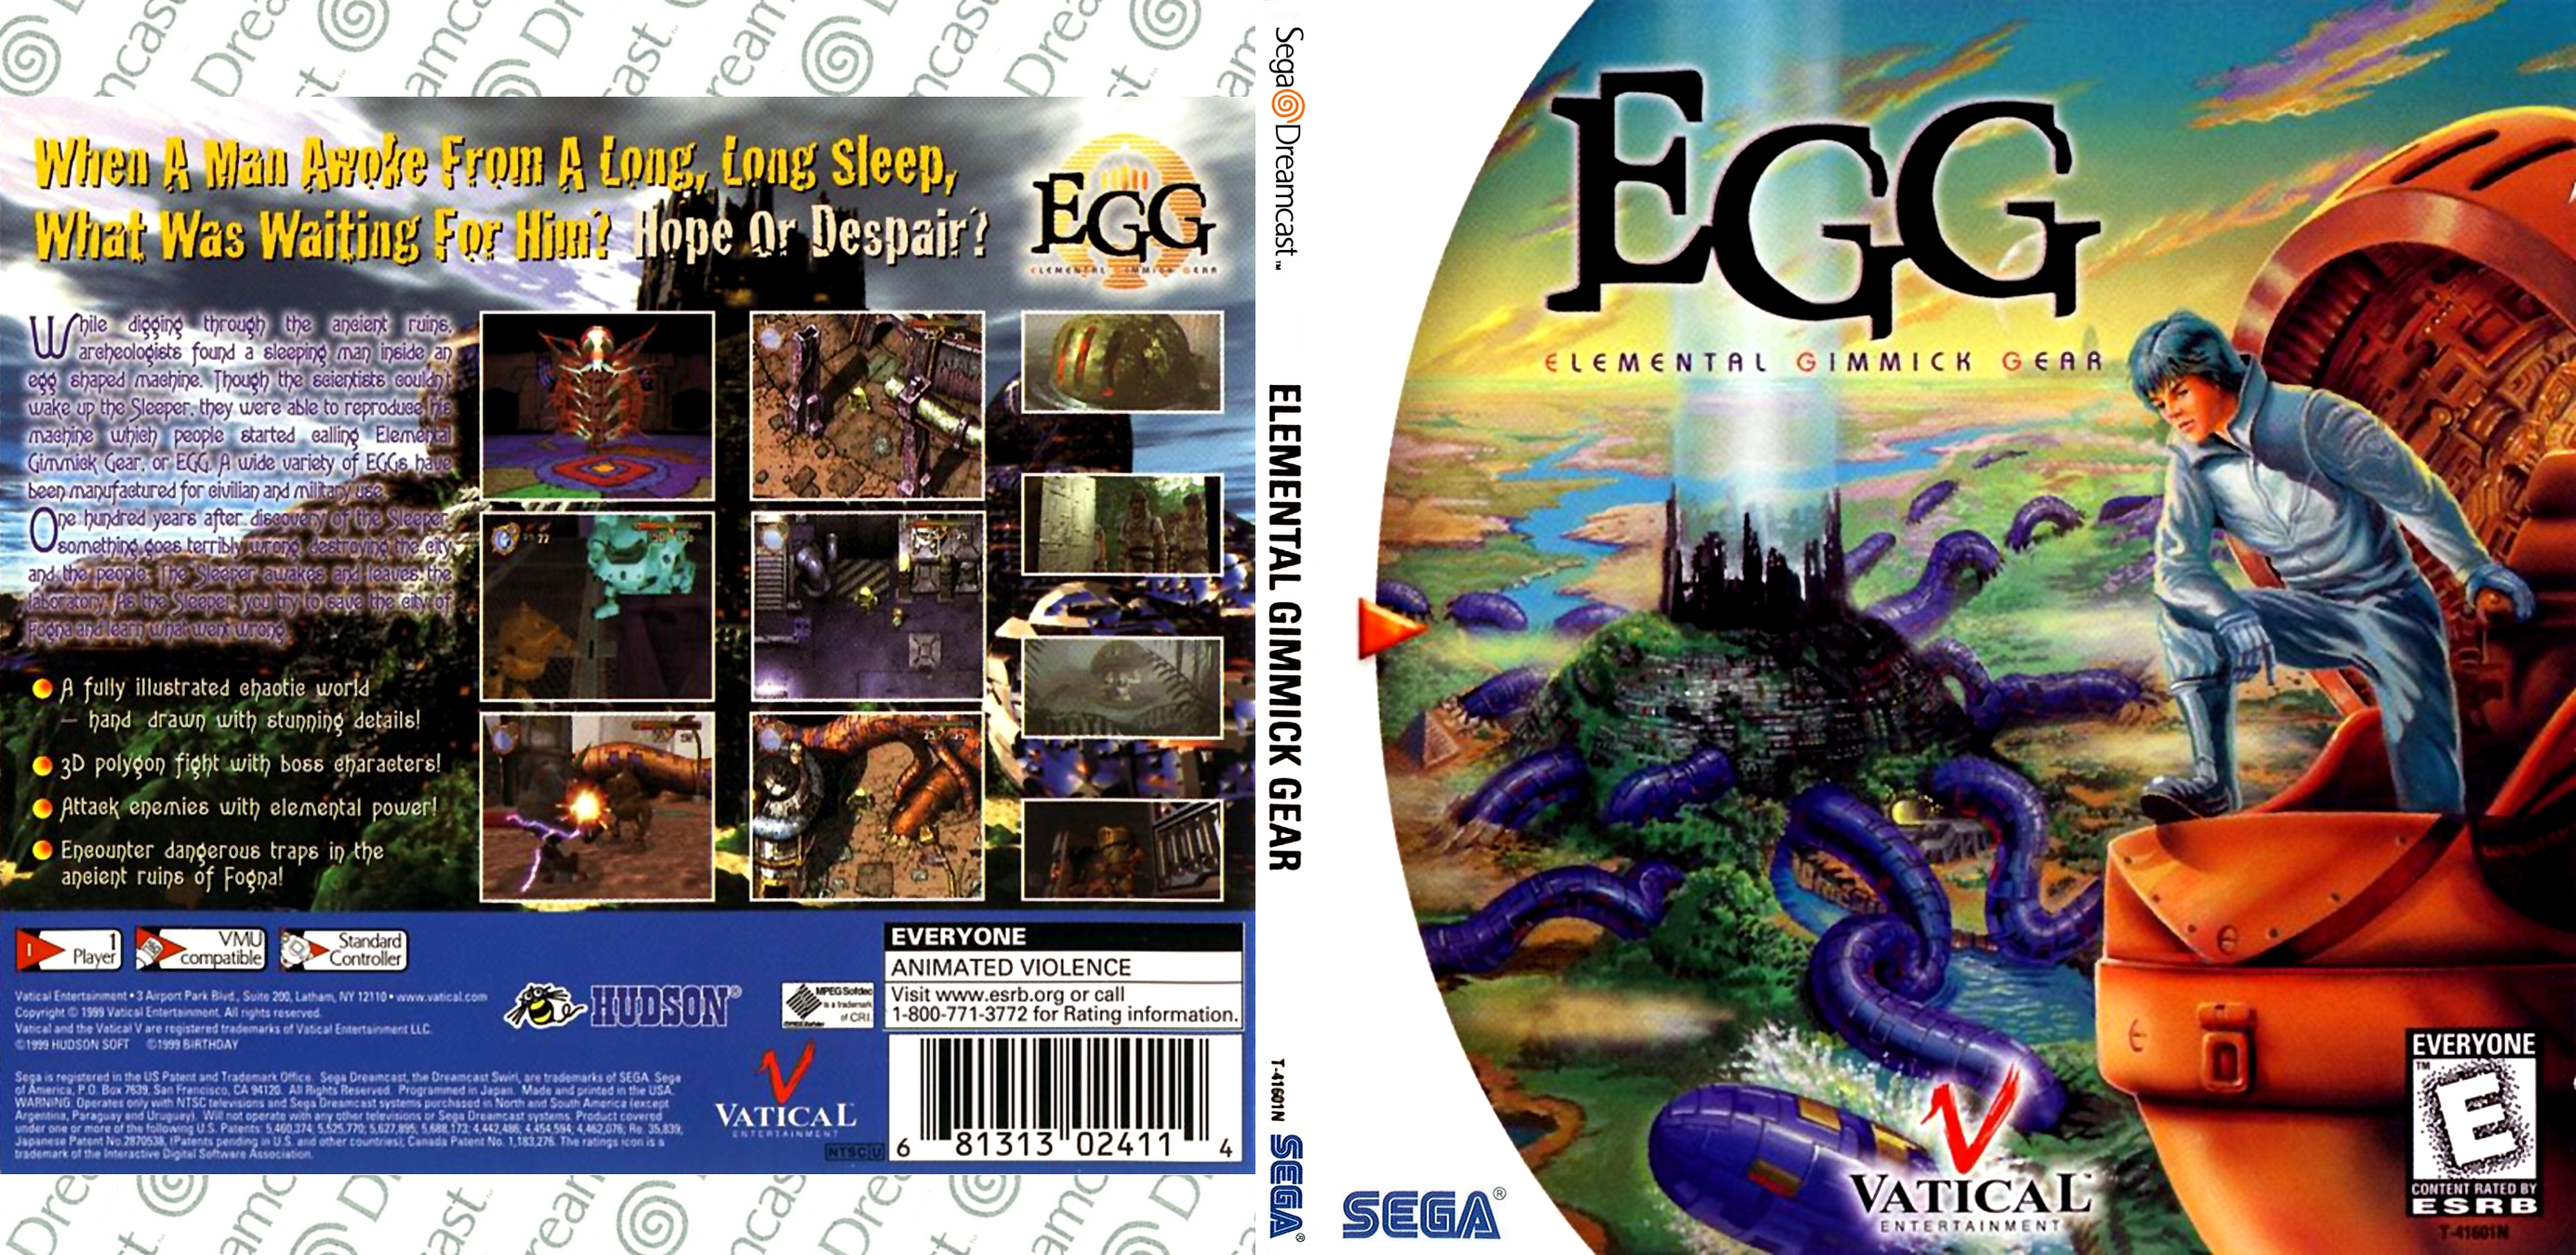 EGG - Elemental Gimmick Gear (Vatical Entertainment) [NTSC-U]